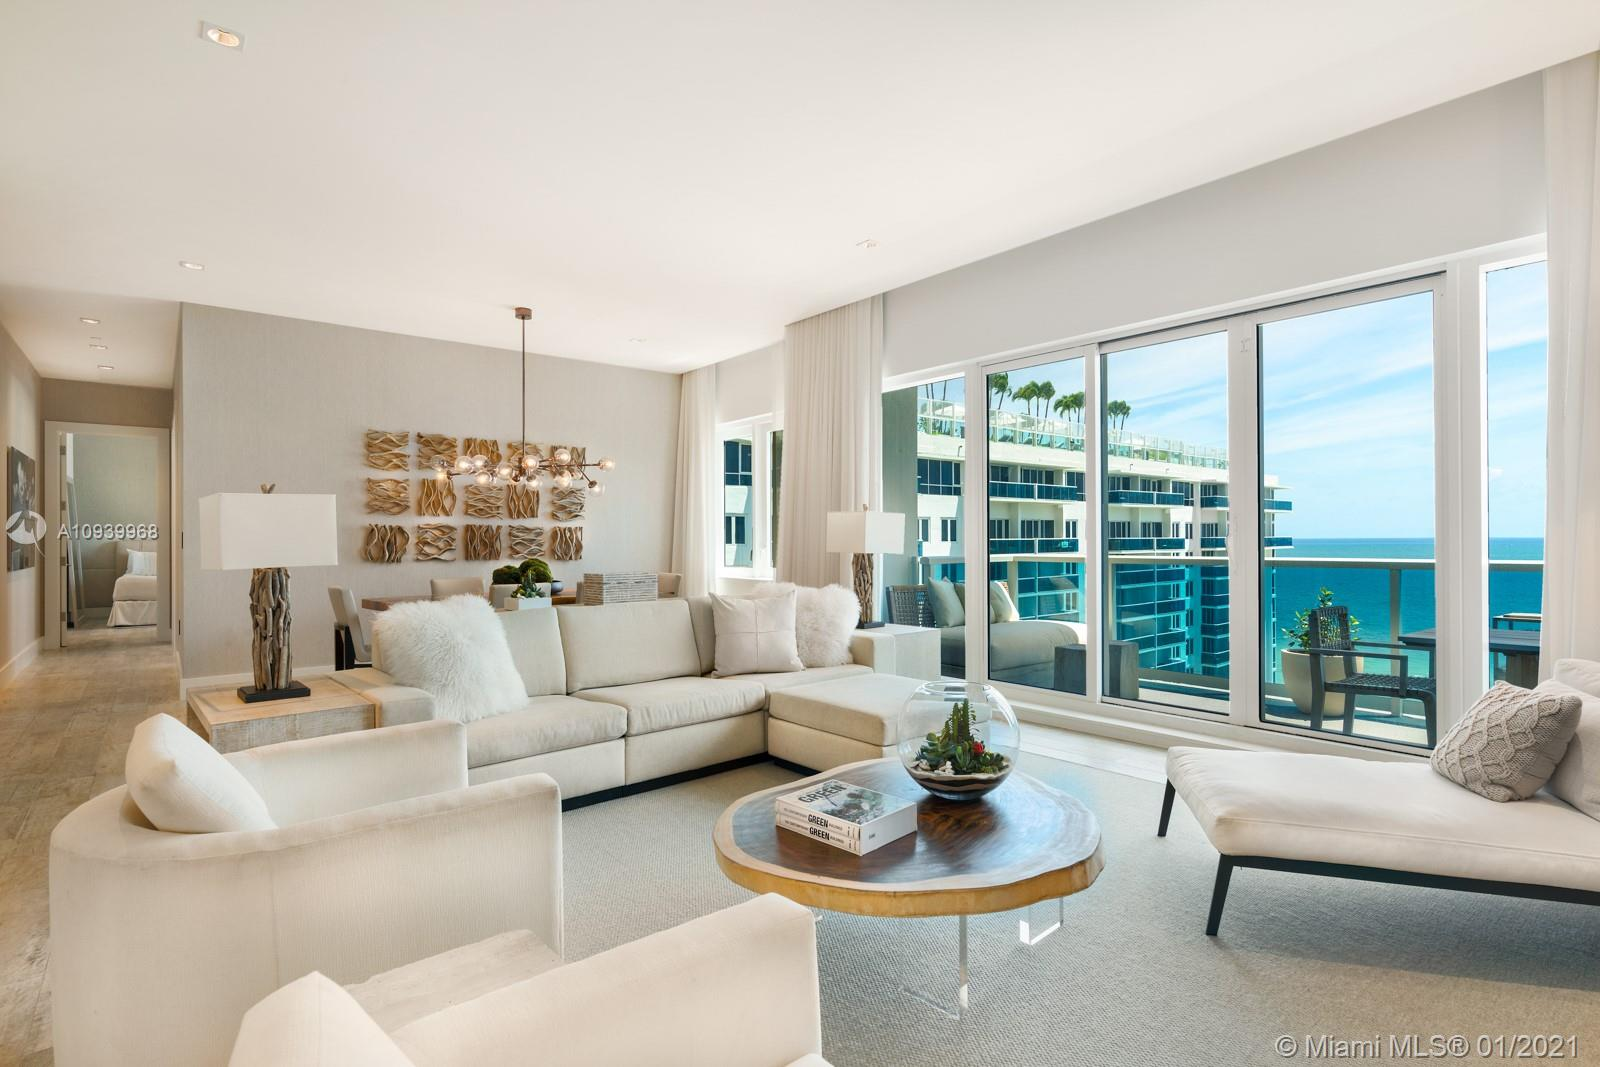 Enjoy the sounds of the ocean in your direct ocean view trophy Penthouse located at 1 Hotel & Homes, South Beach! Featuring lavish home elements delivered fully furnished by Brazilian designer Debora Aguiar. Bring the outside in, floor to ceiling sliding doors make this spacious 5 bed + maids quarters, 4.5 baths w/ 2,792 sqft. seem endless. Experience hotel living with access to all amenities, valet, concierge, in-room dining, 14,000 sqft gym, Bamford Haybarn SPA, Restaurants, Rooftop pool & more!